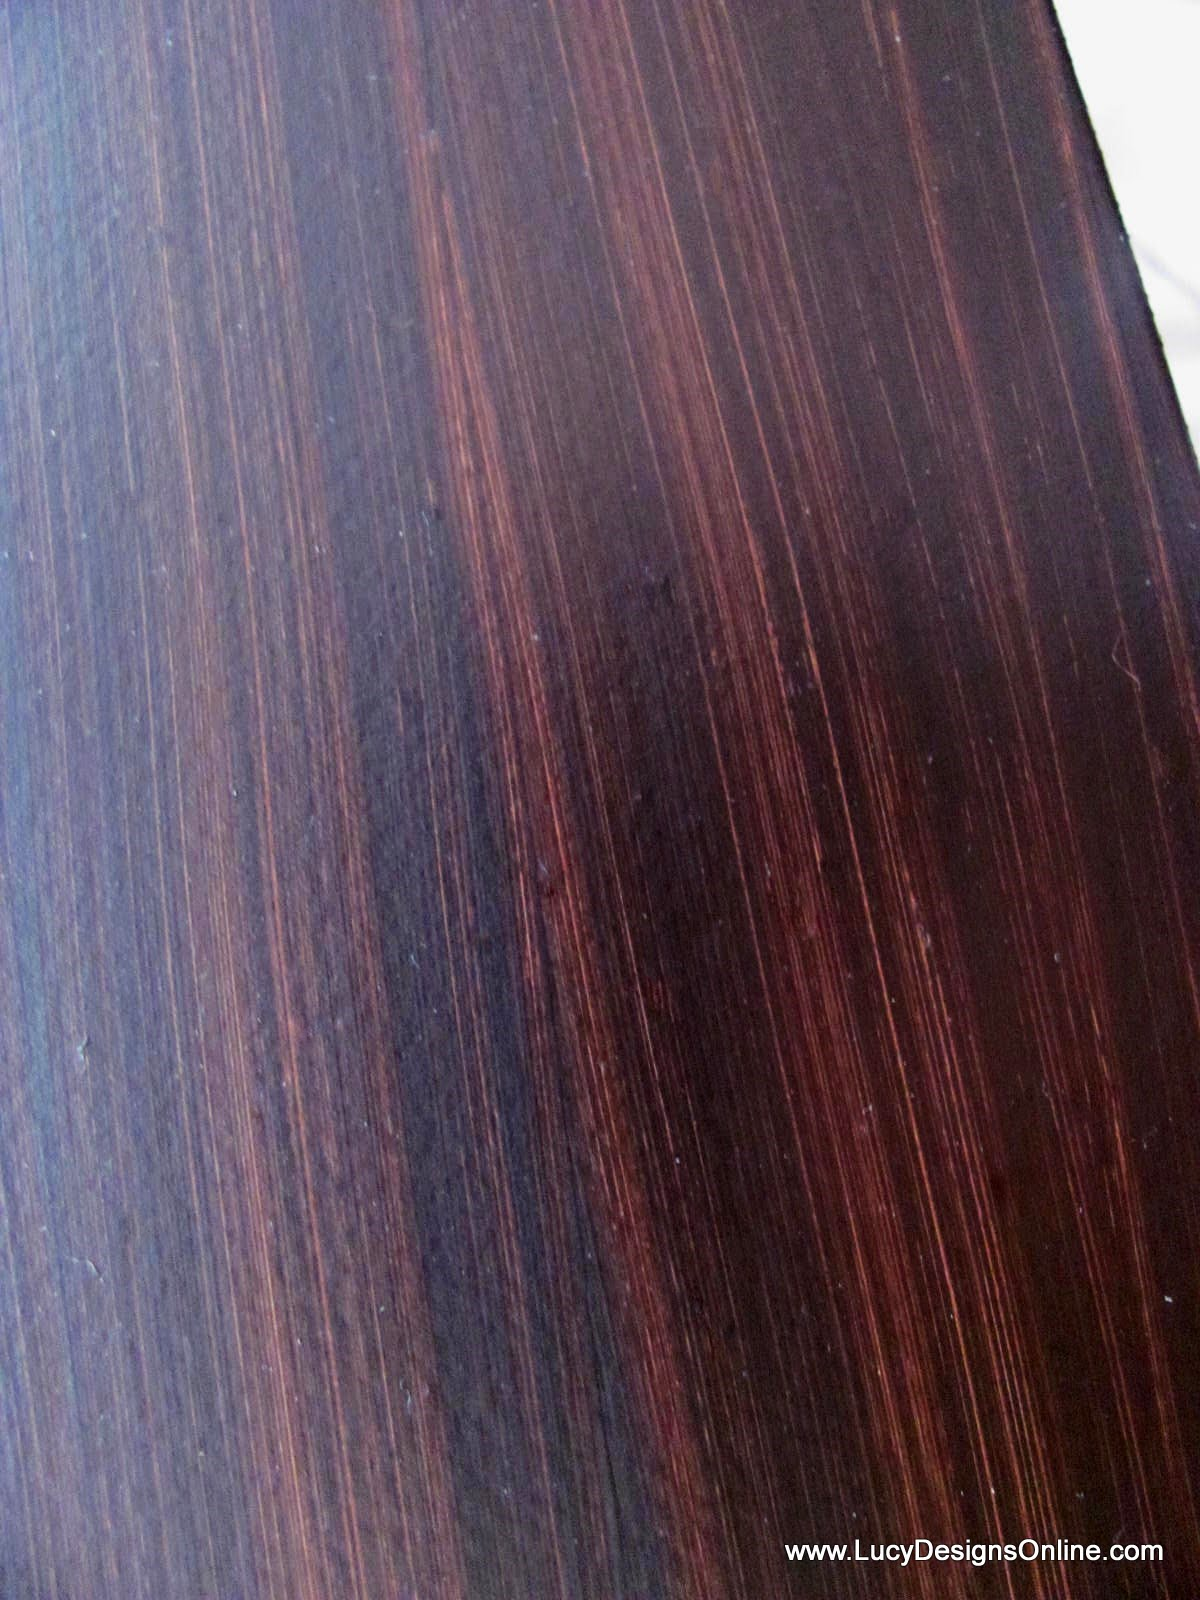 Staining Bedroom Furniture Gel Stain Over White Furniture Lucy Designs